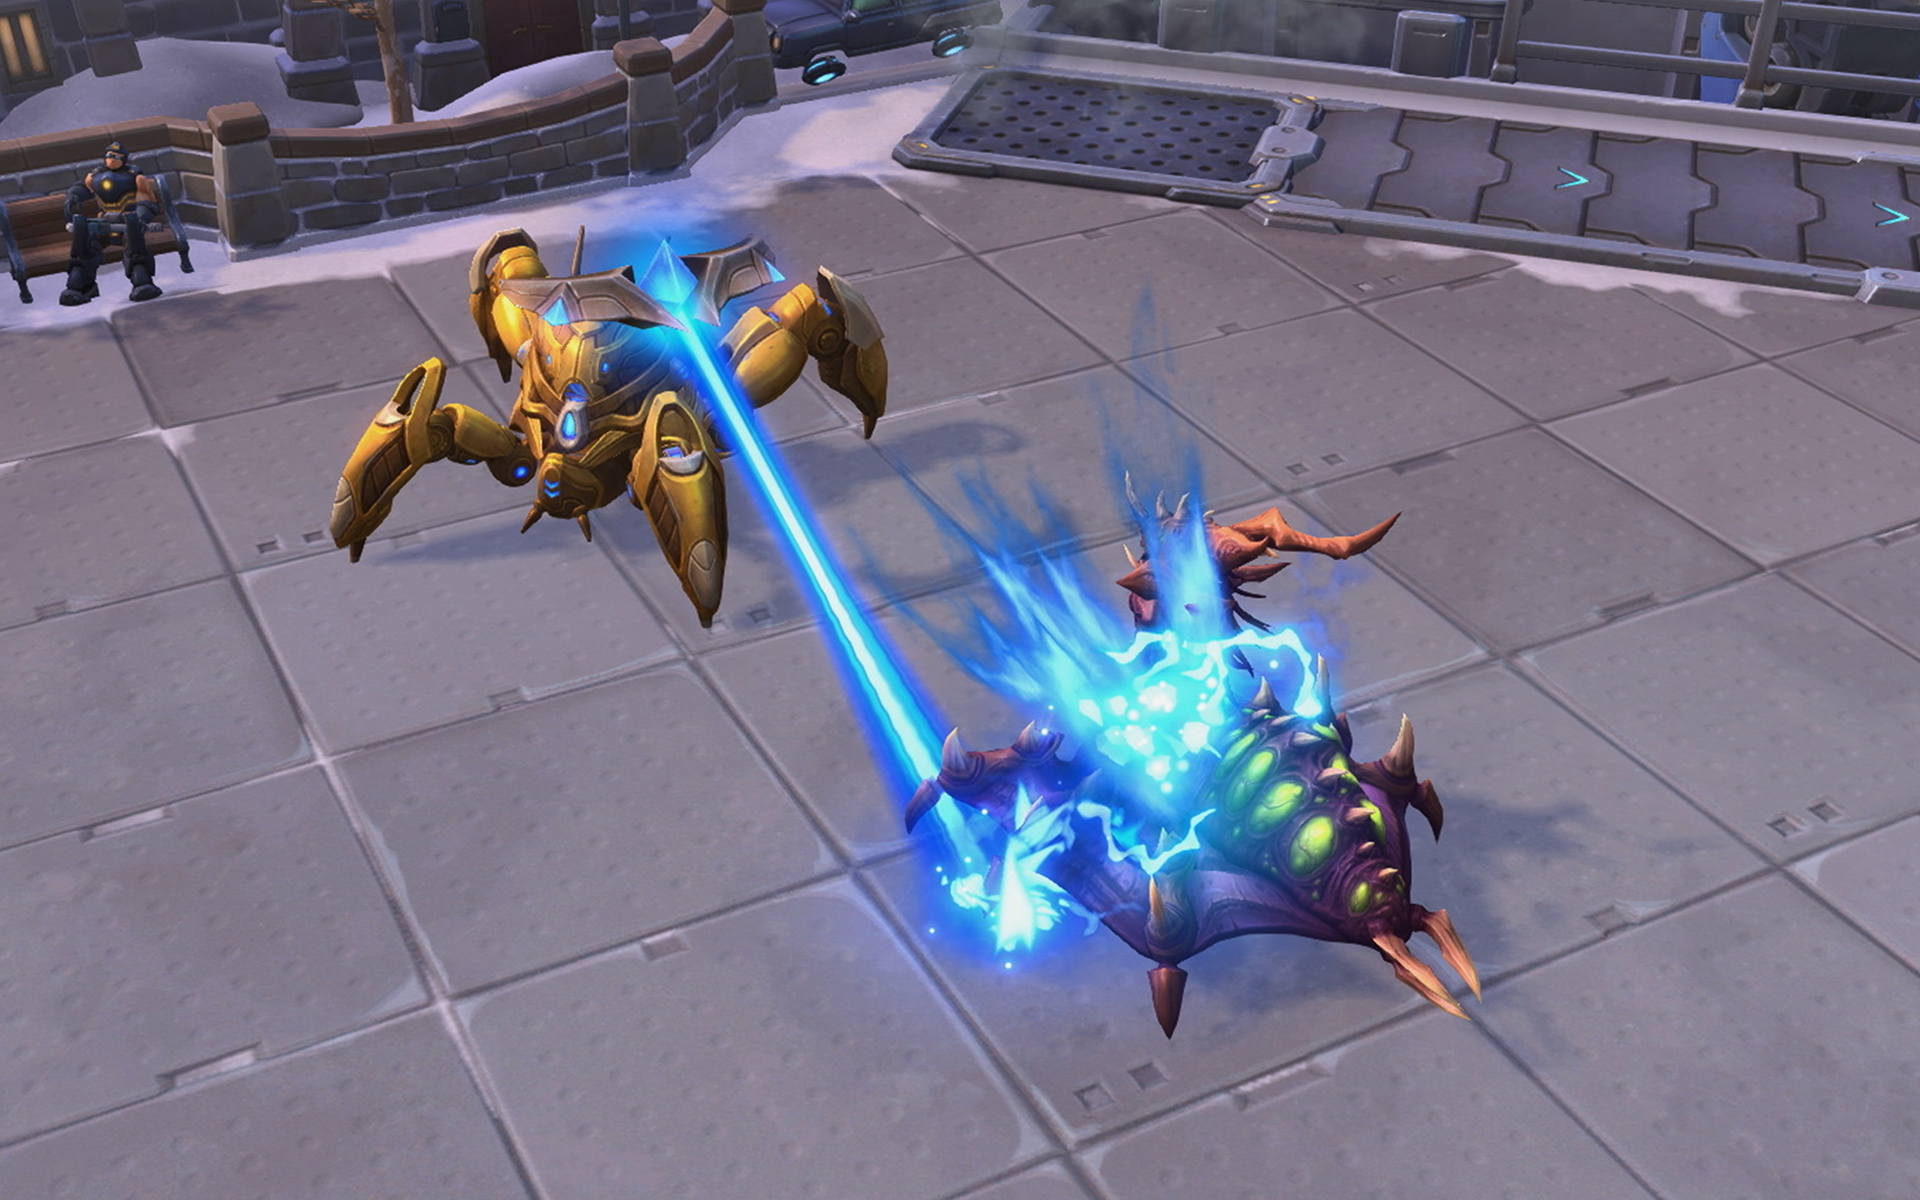 Fenix Tips From Yoda Heroes Of The Storm Blizzard News Last updated on apr 07, 2020 at 18:00 by derenash 22 comments. fenix tips from yoda heroes of the